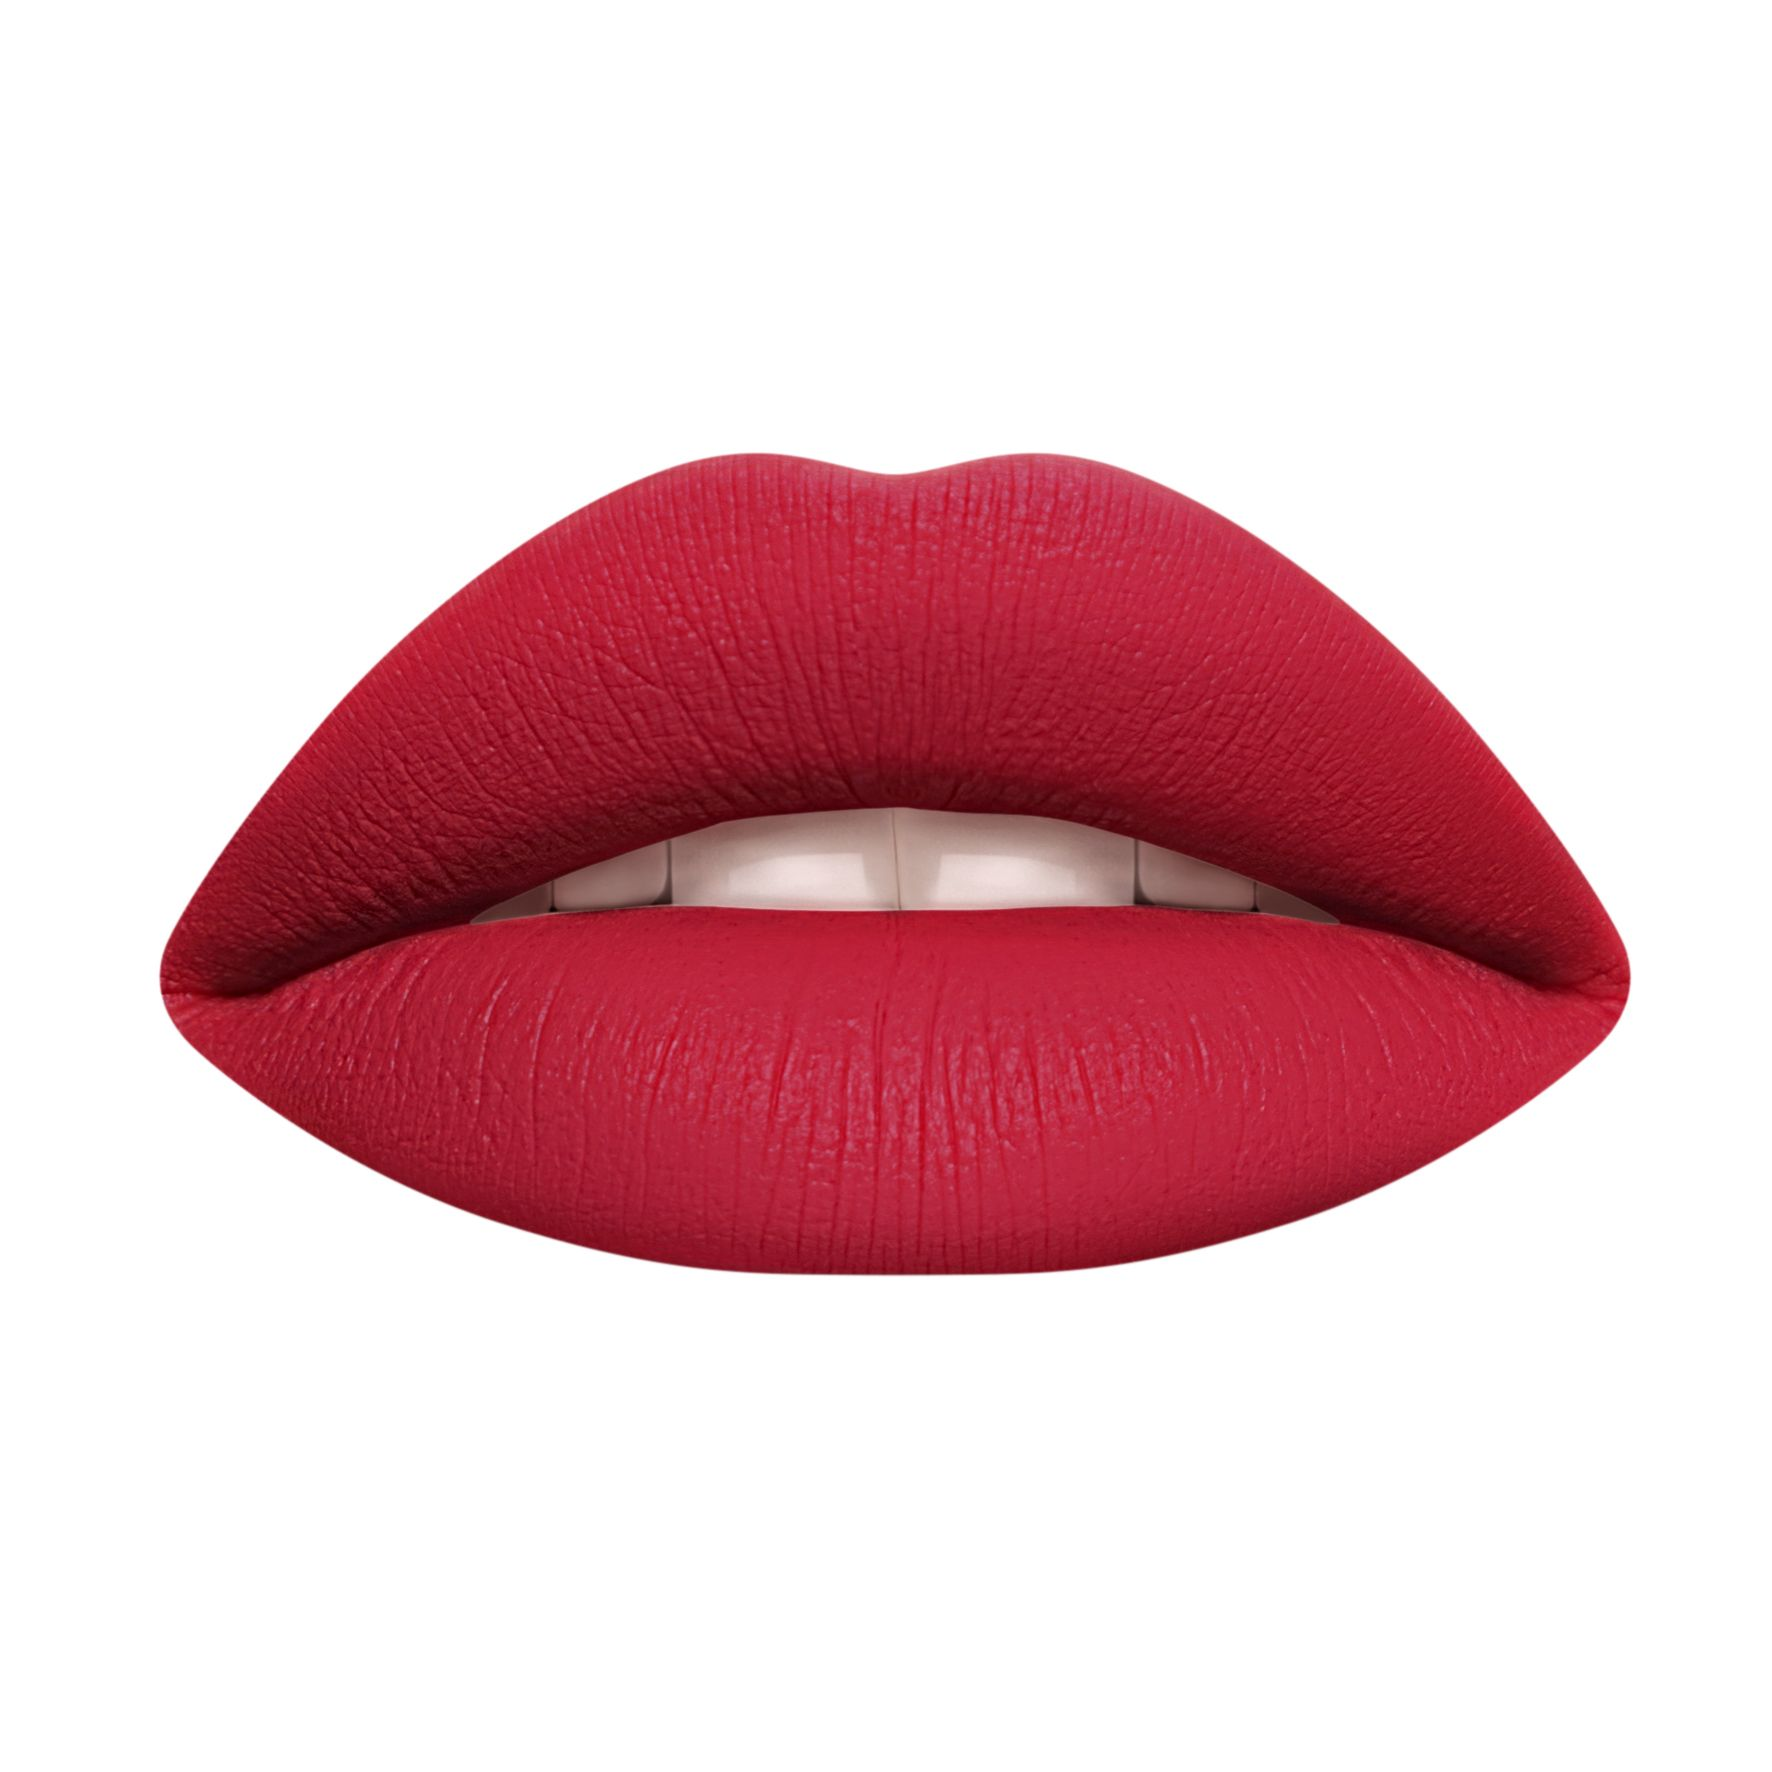 LIQUID LIPSTICK rossetto liquido finish opaco